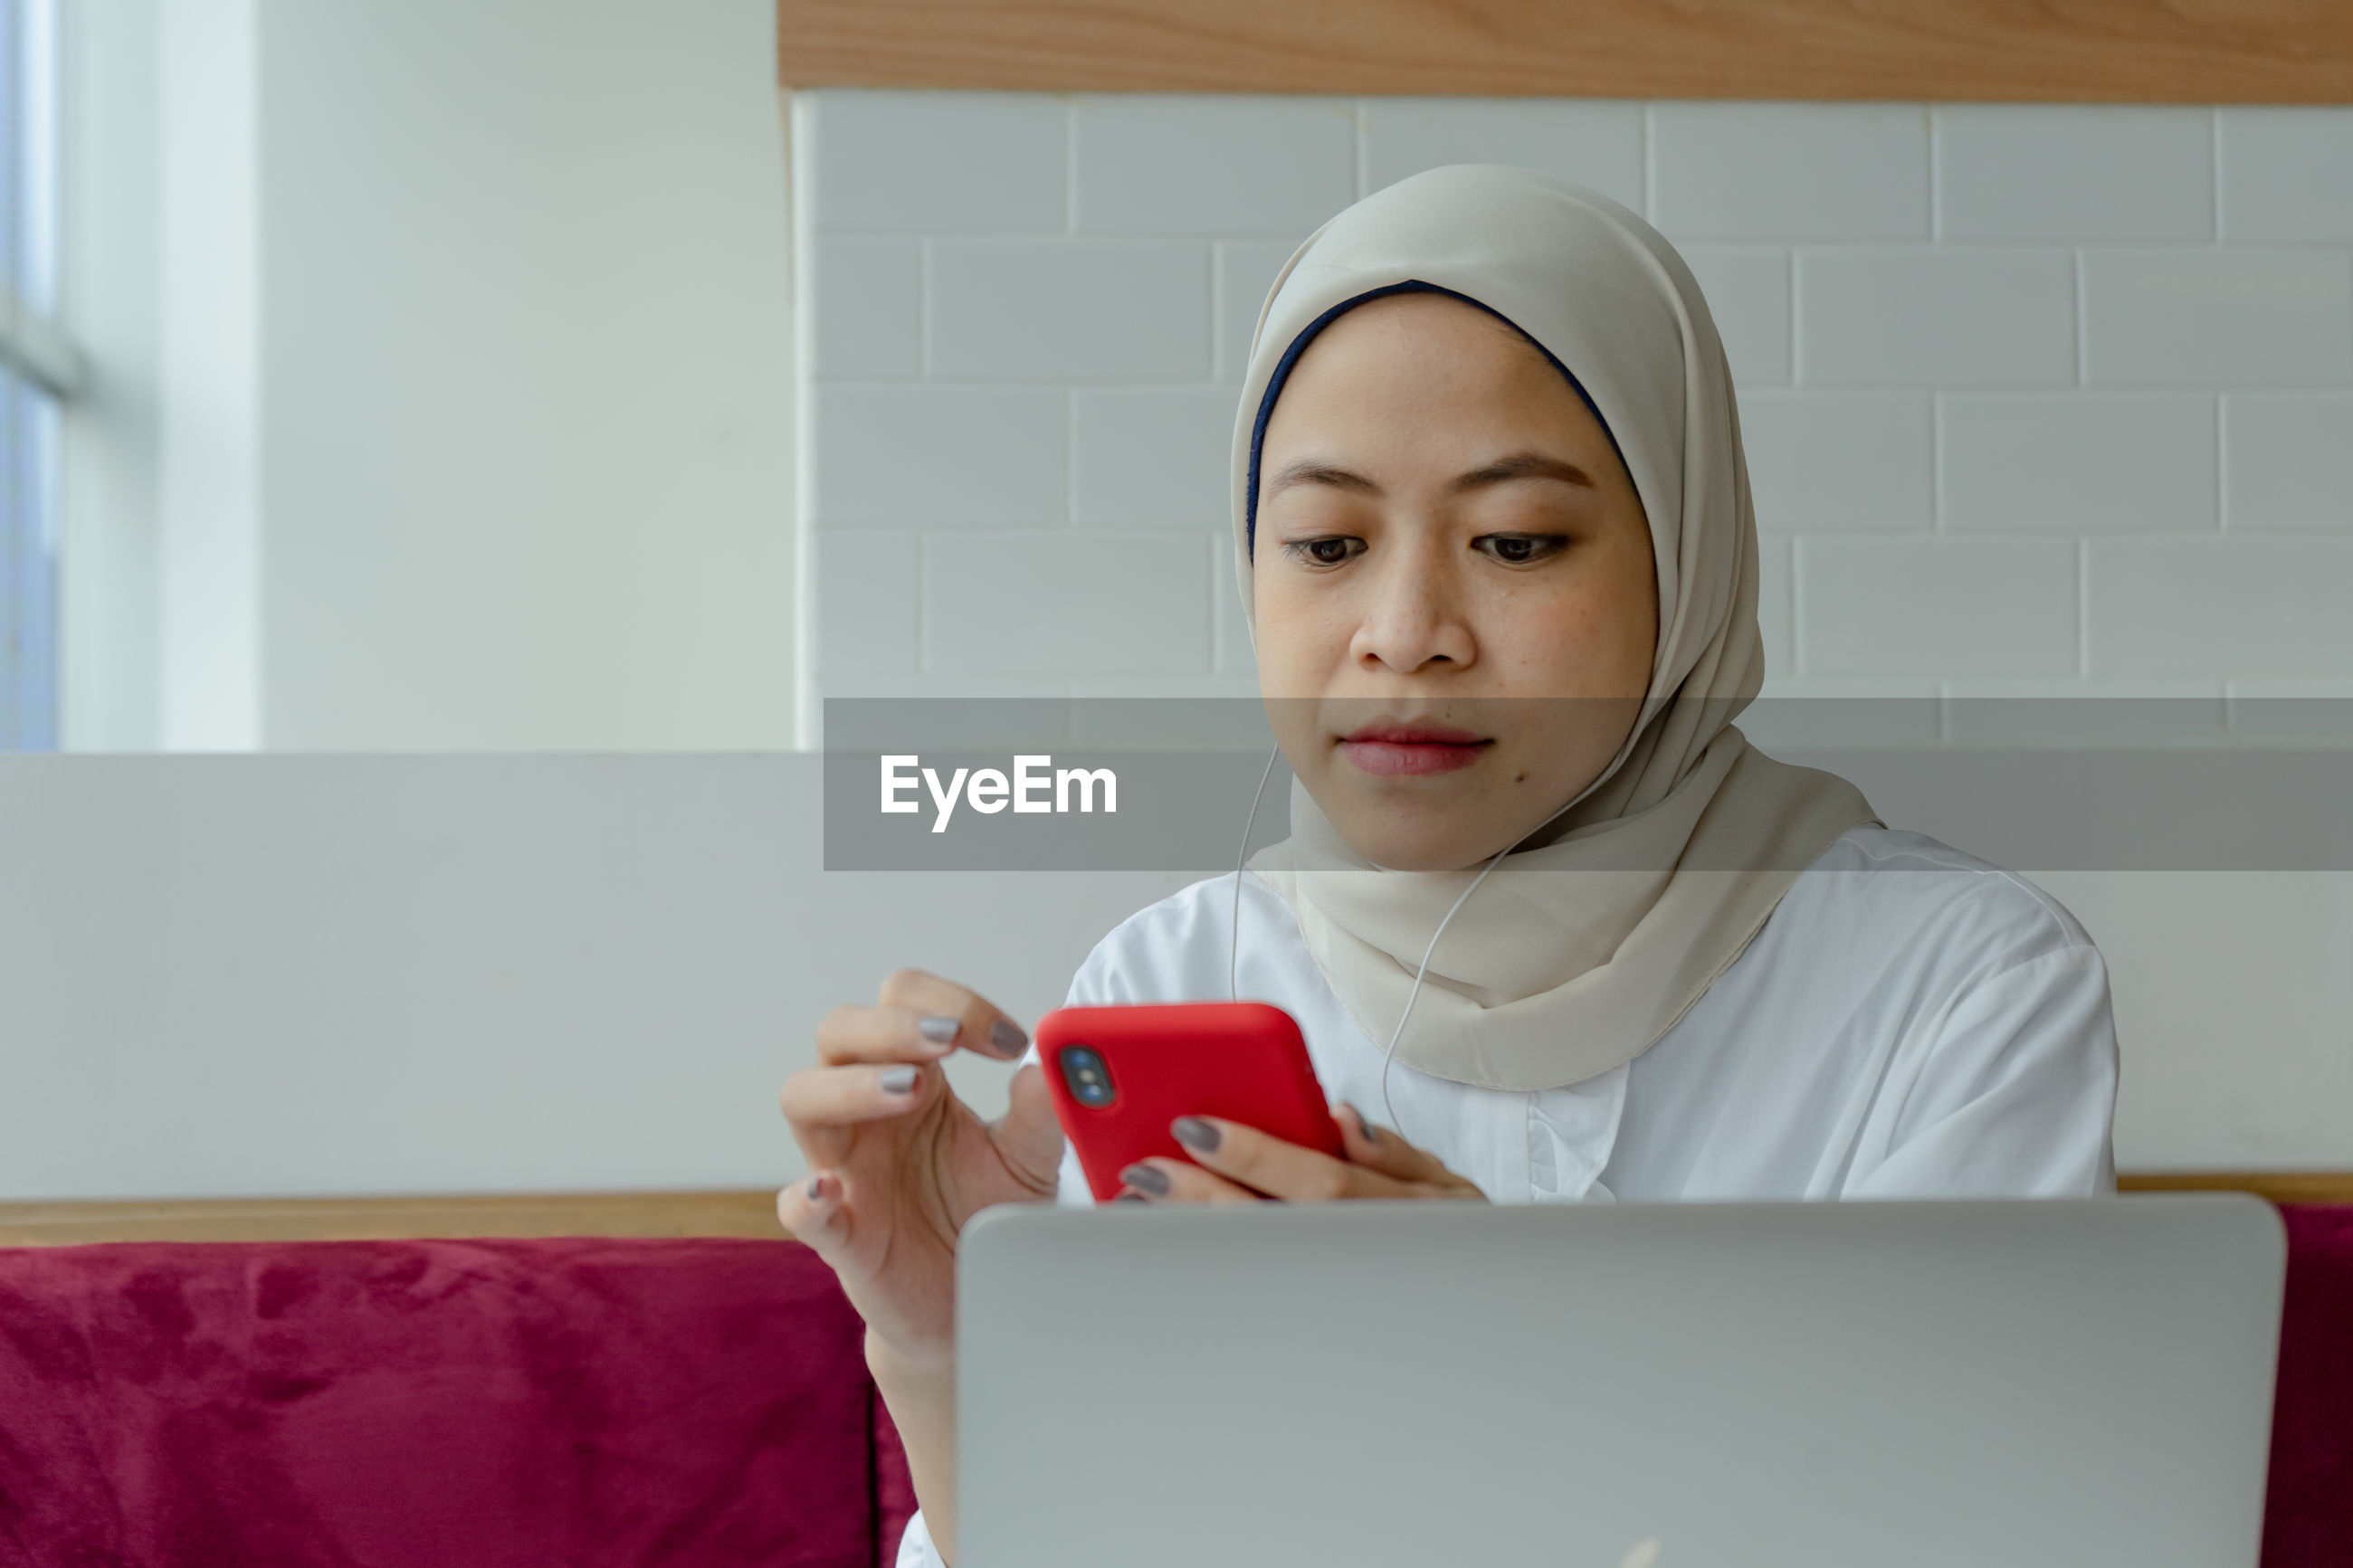 PORTRAIT OF YOUNG WOMAN USING MOBILE PHONE IN LAPTOP